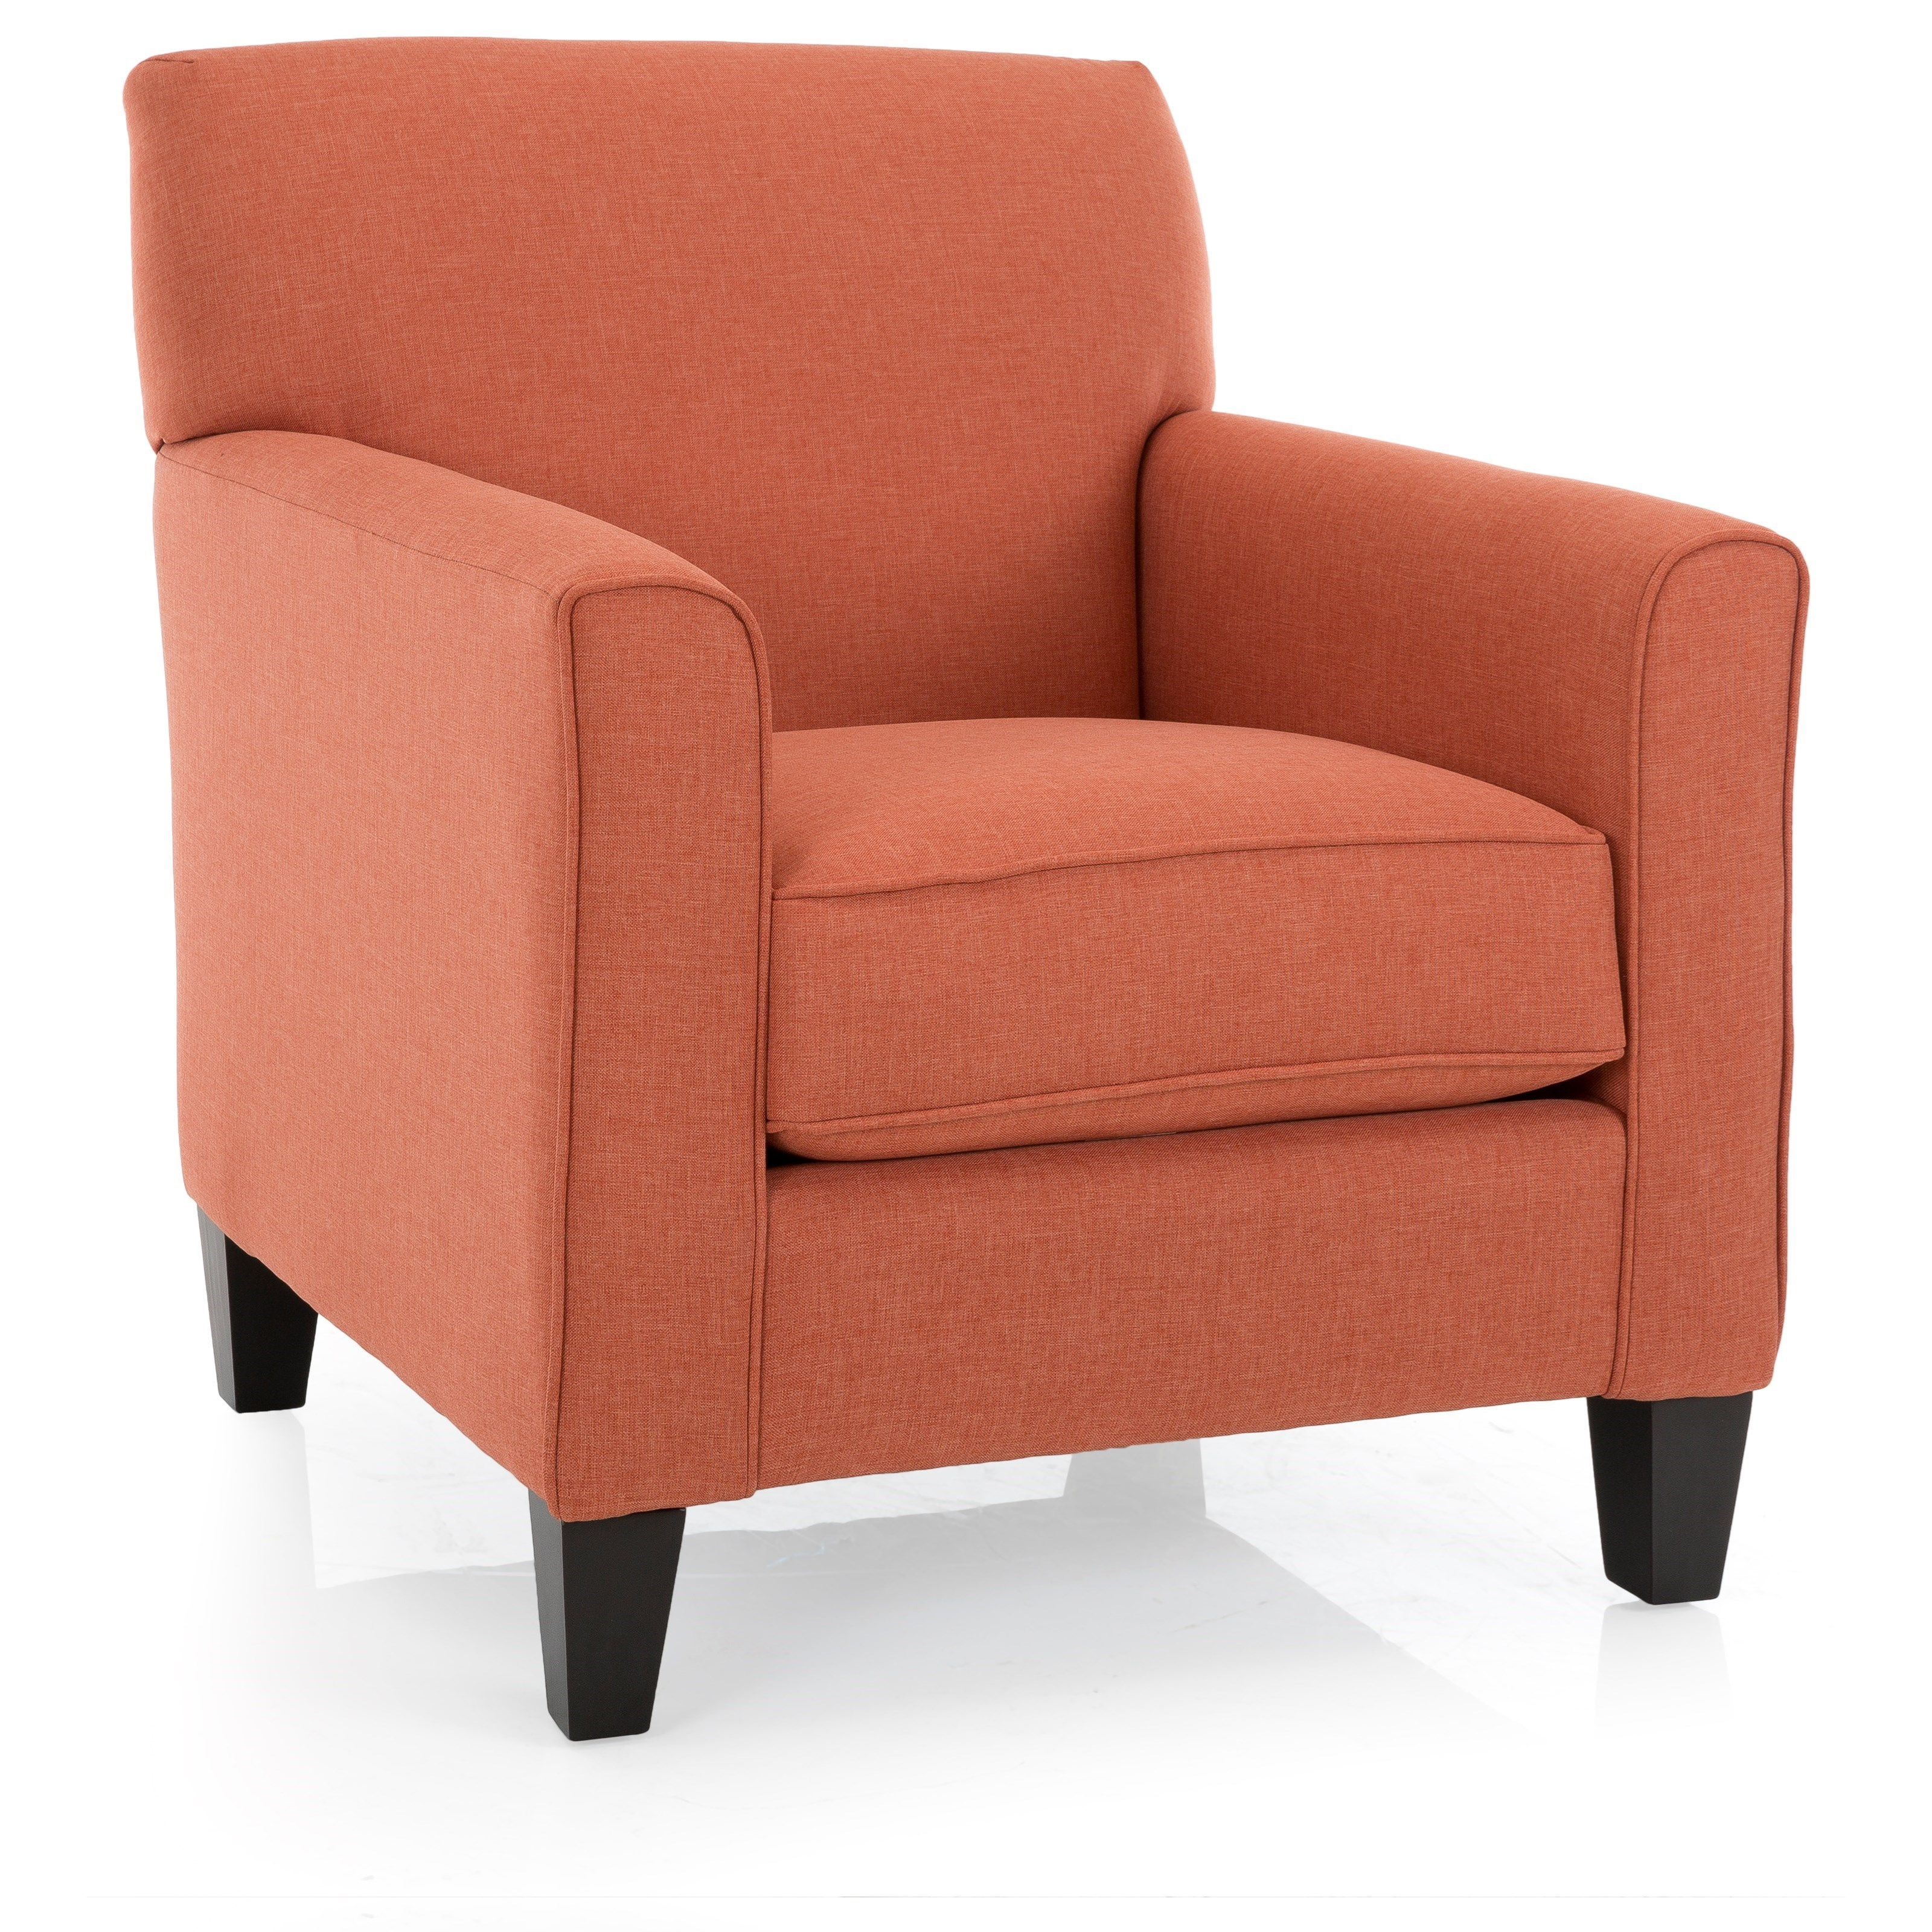 2468 Transitional Accent Chair by Decor-Rest at Johnny Janosik